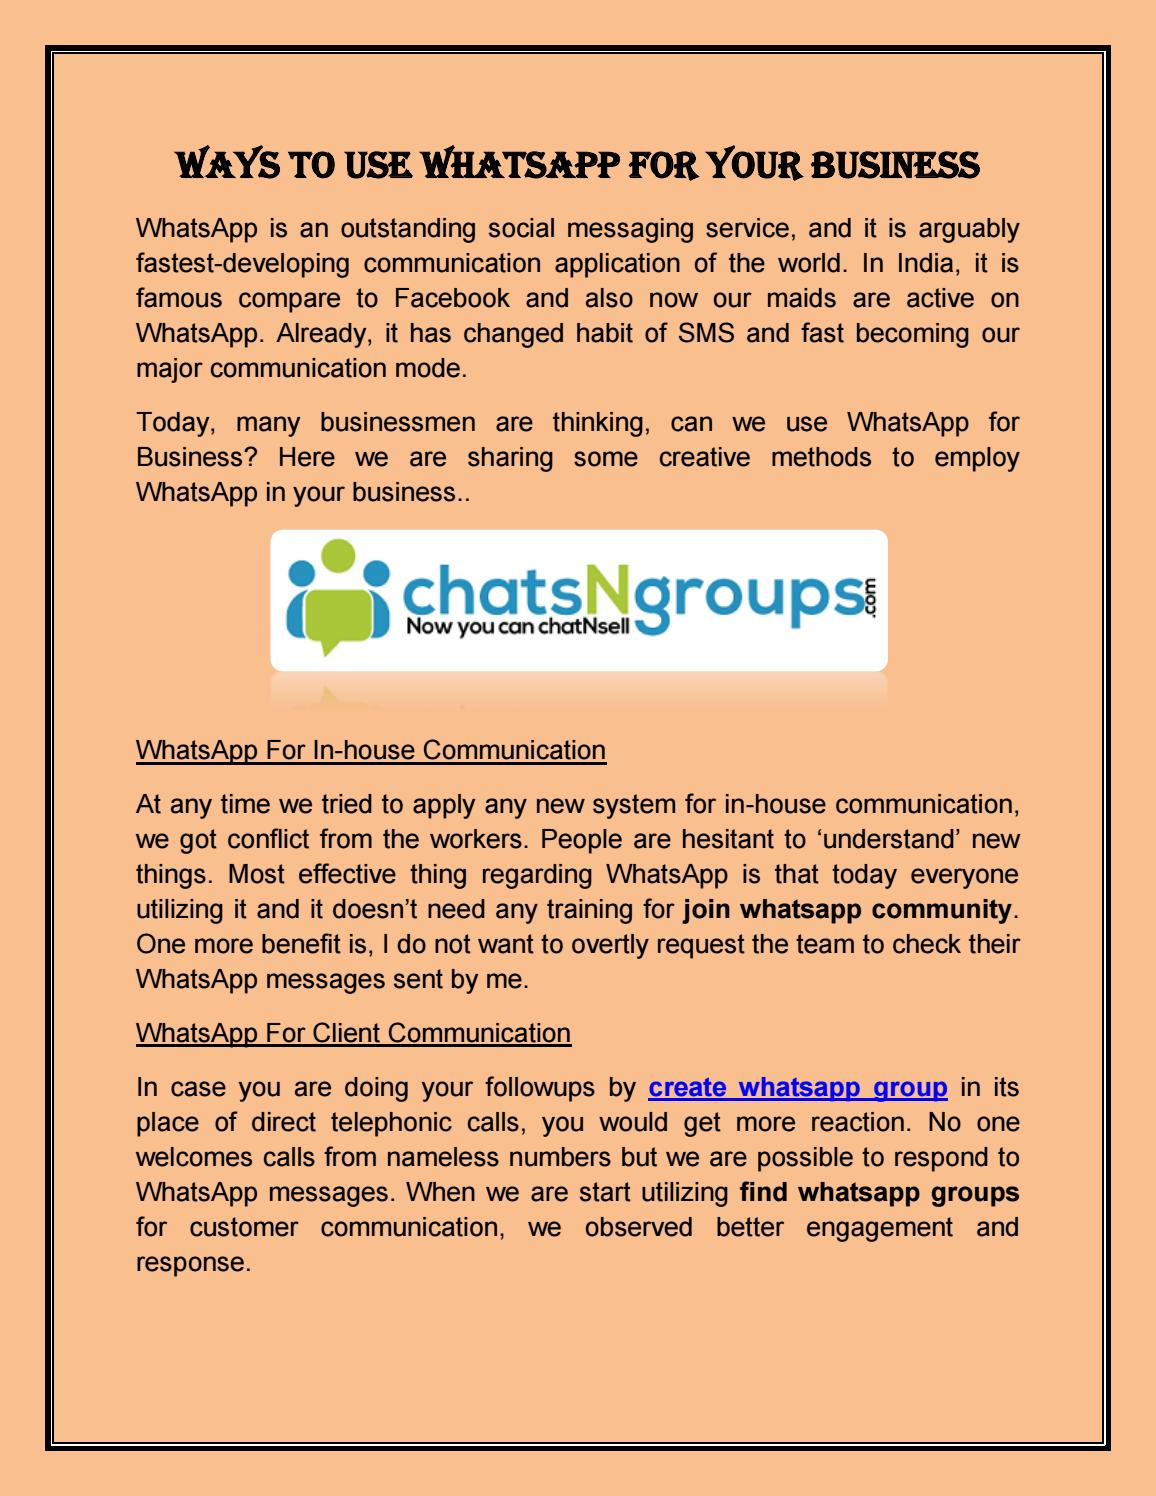 Ways to use whatsapp for your business by chatsngroups - issuu